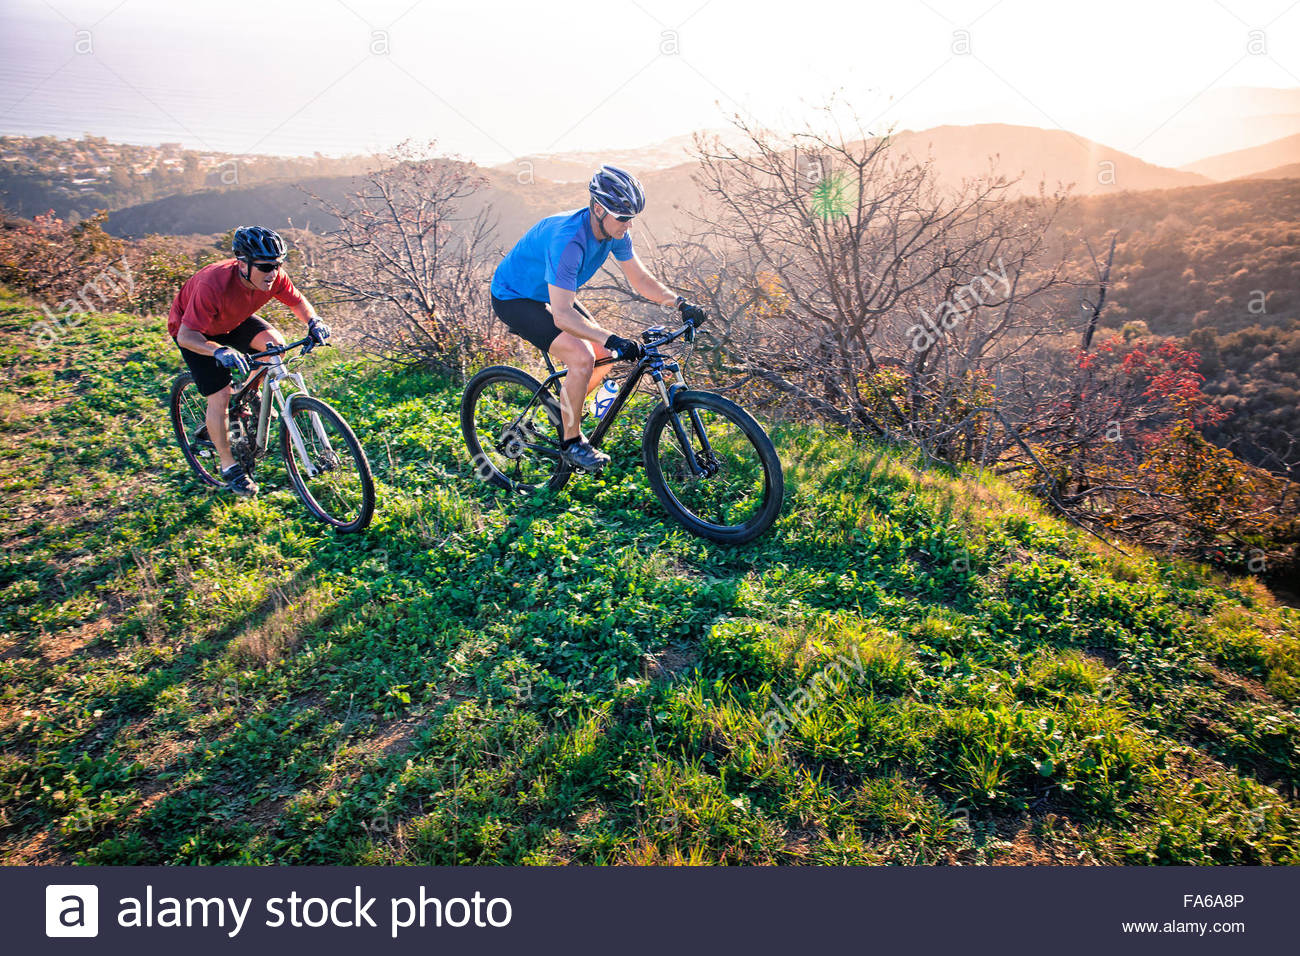 Two men mountain biking along trail, California, America, USA - Stock Image